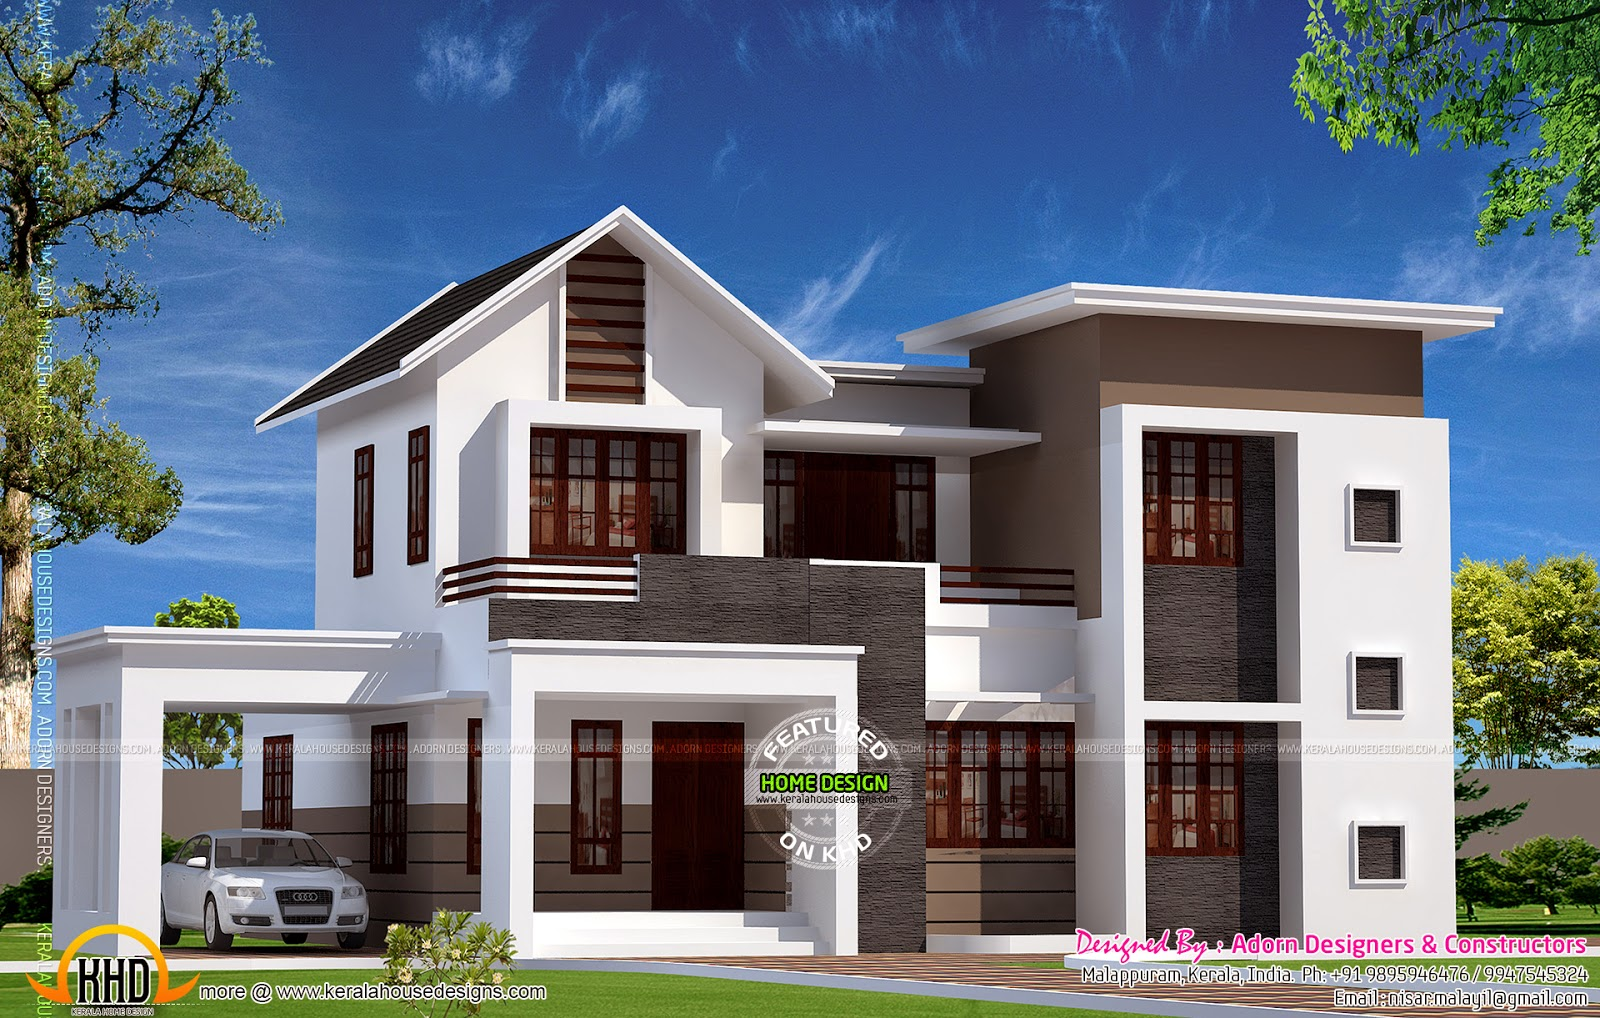 New house design in 1900 sq feet kerala home design and for Best house design 2014